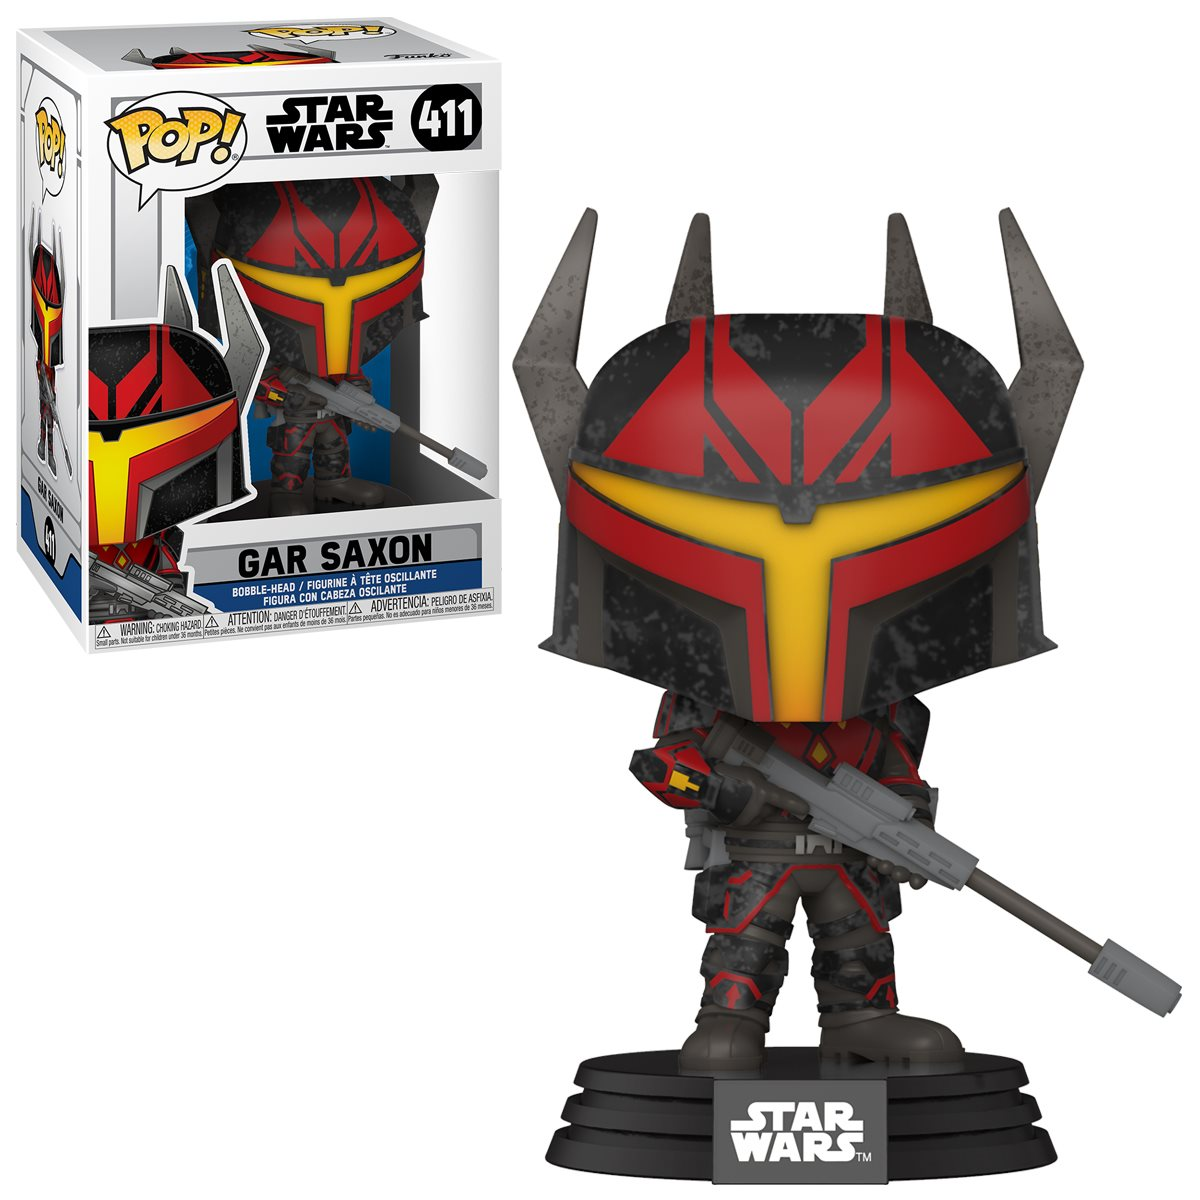 PRÉ VENDA: Funko Pop! Gar Saxon: Star Wars: The Clone Wars #411 - Funko